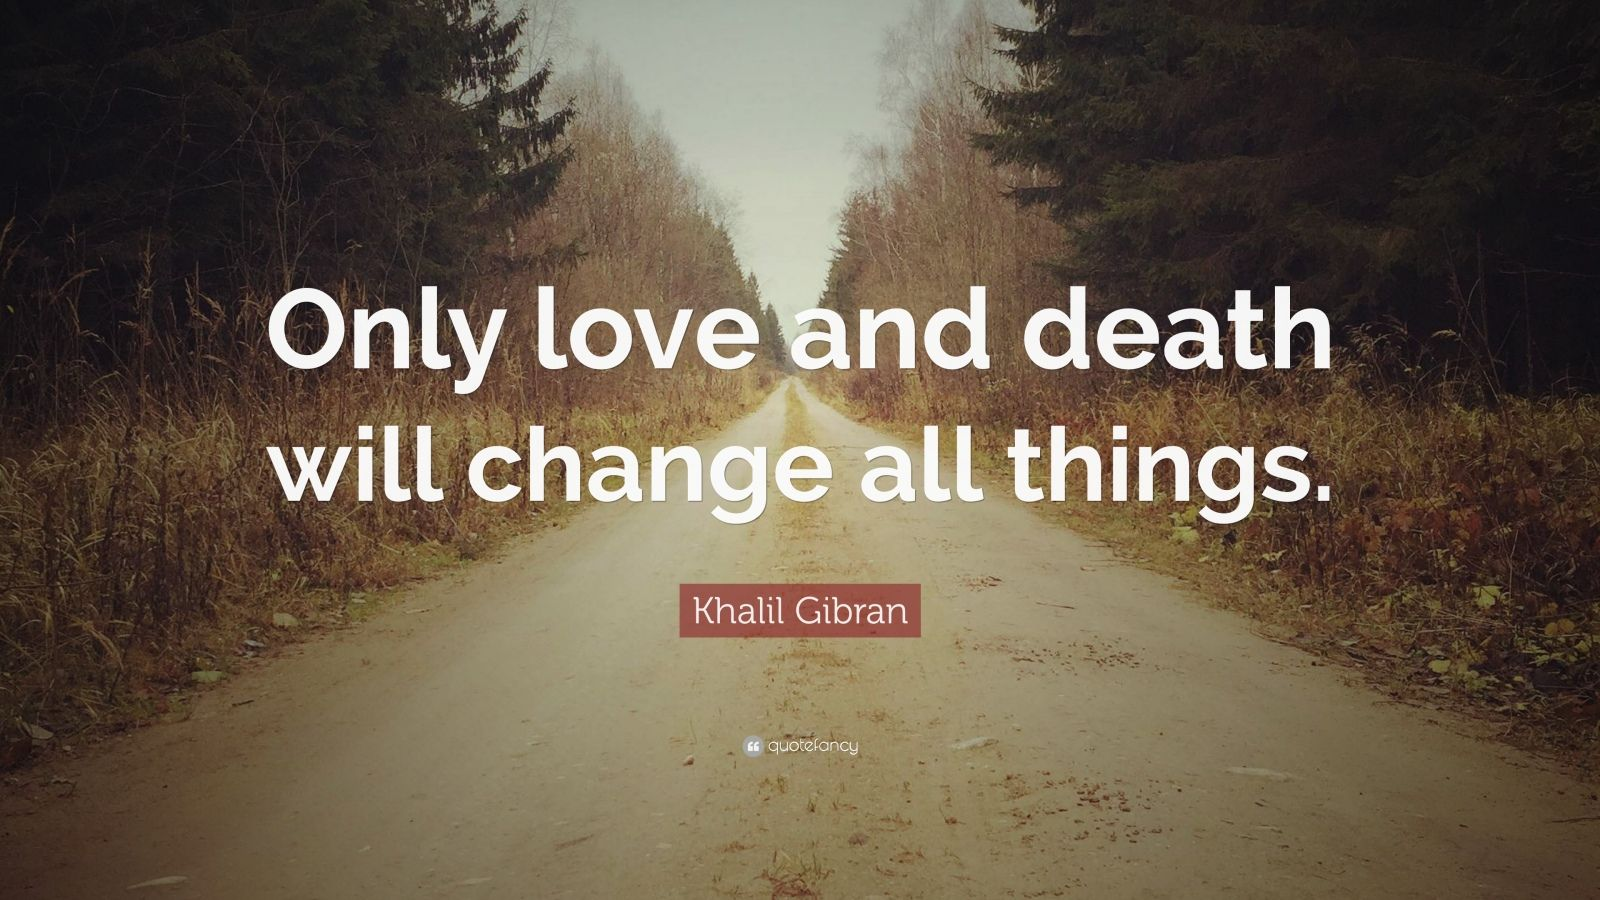 Quotes About Love And Death : Only love and death will change all things. ?